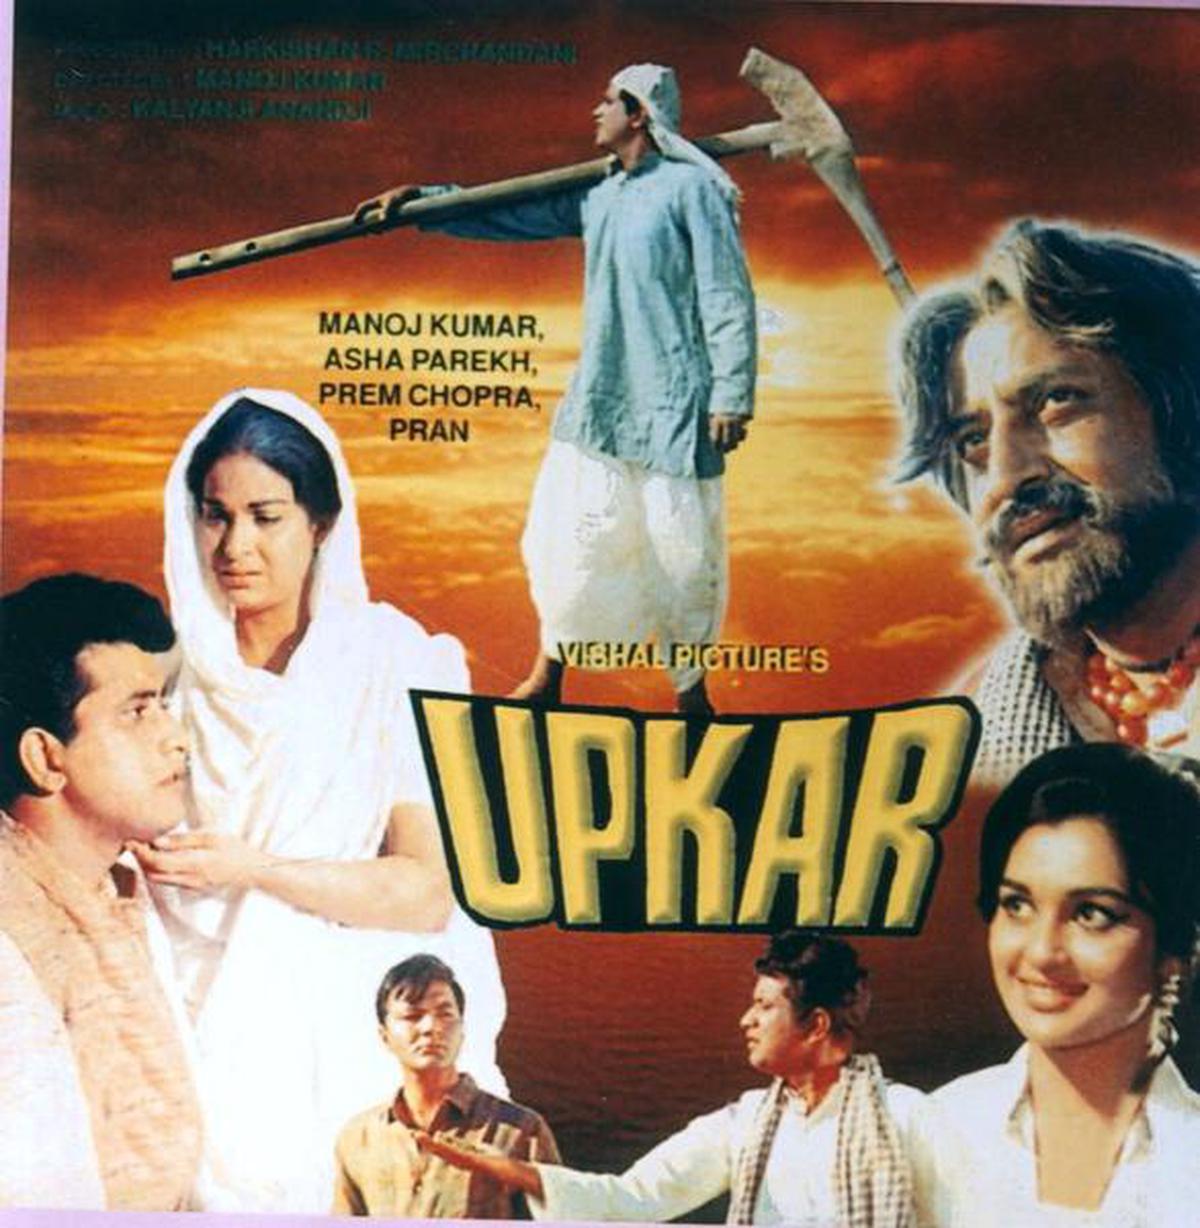 Many films wrote an ode to the Indian farmer, Upkar was one of them